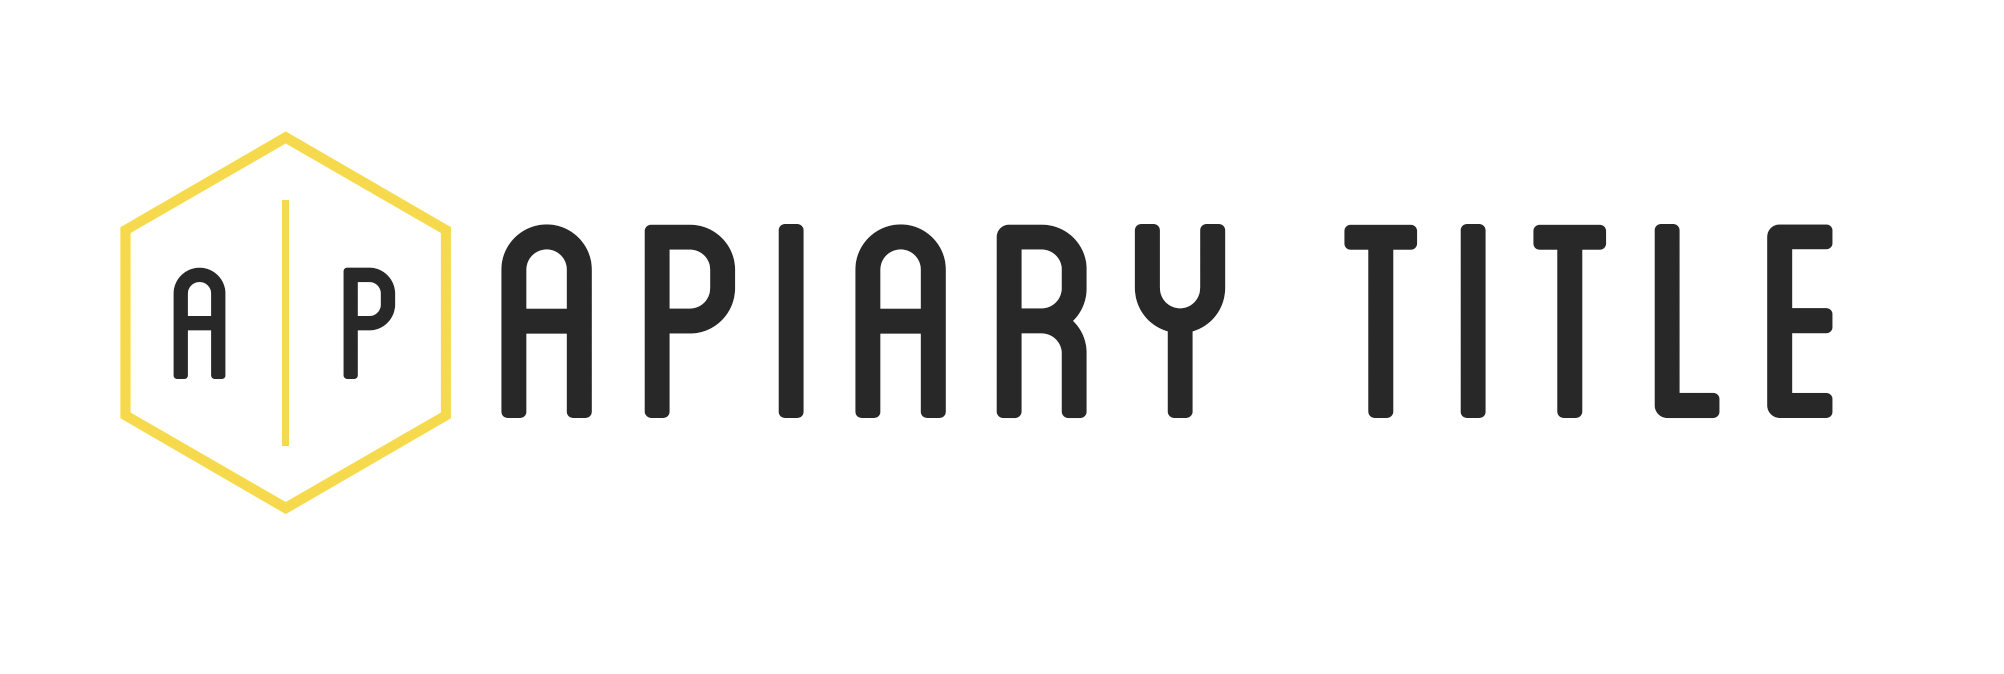 Apiary Title logo